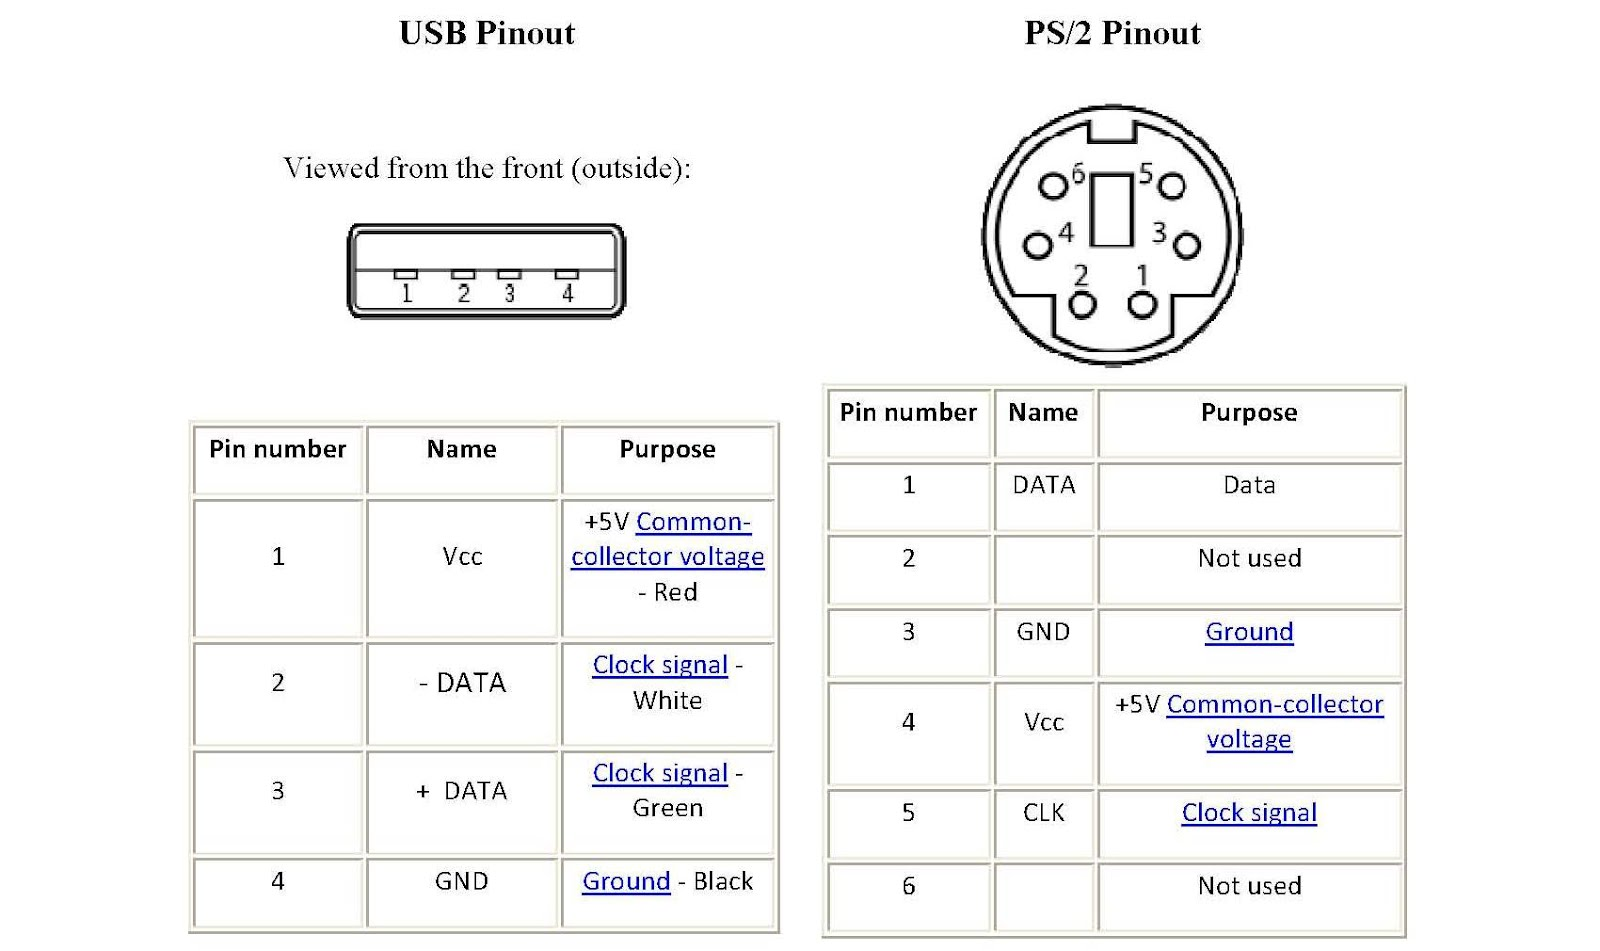 9 pin to usb wire diagram many things that we don't know: usb to ps2 key board.. ps2 to usb wire diagram